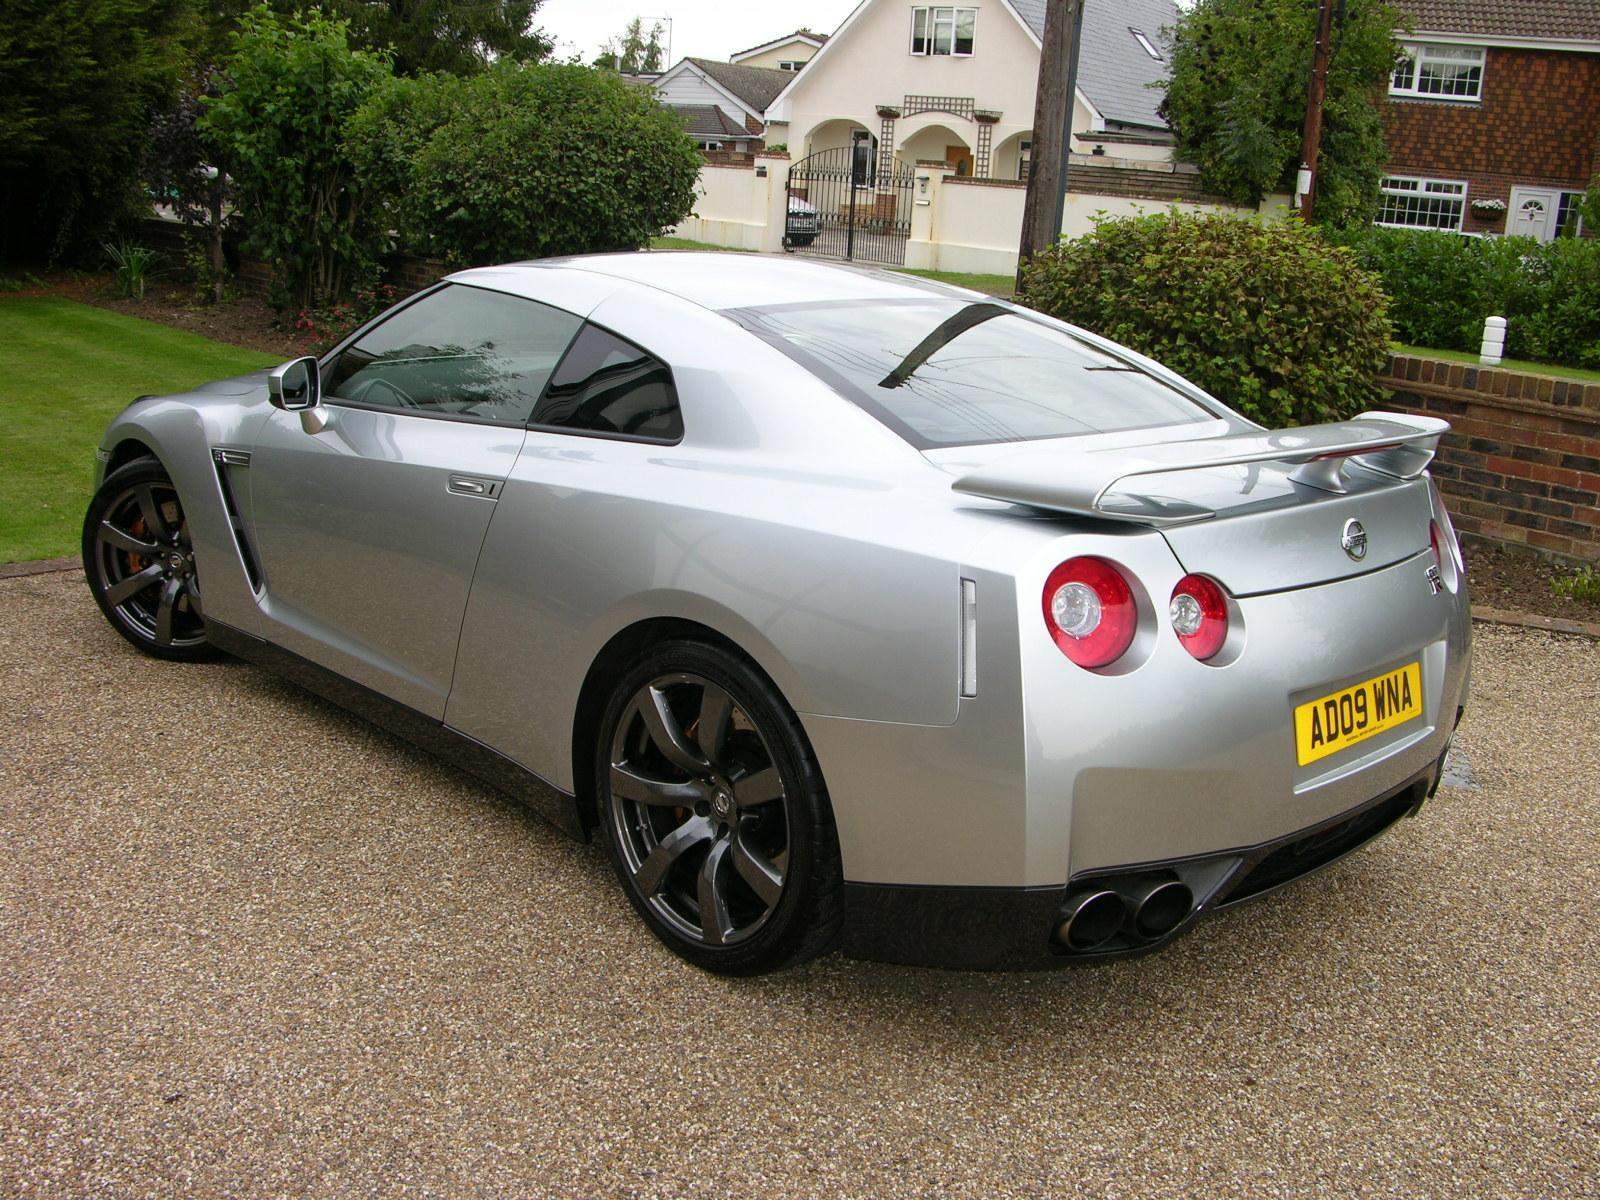 file:2009 nissan gt-r premium - flickr - the car spy (30)